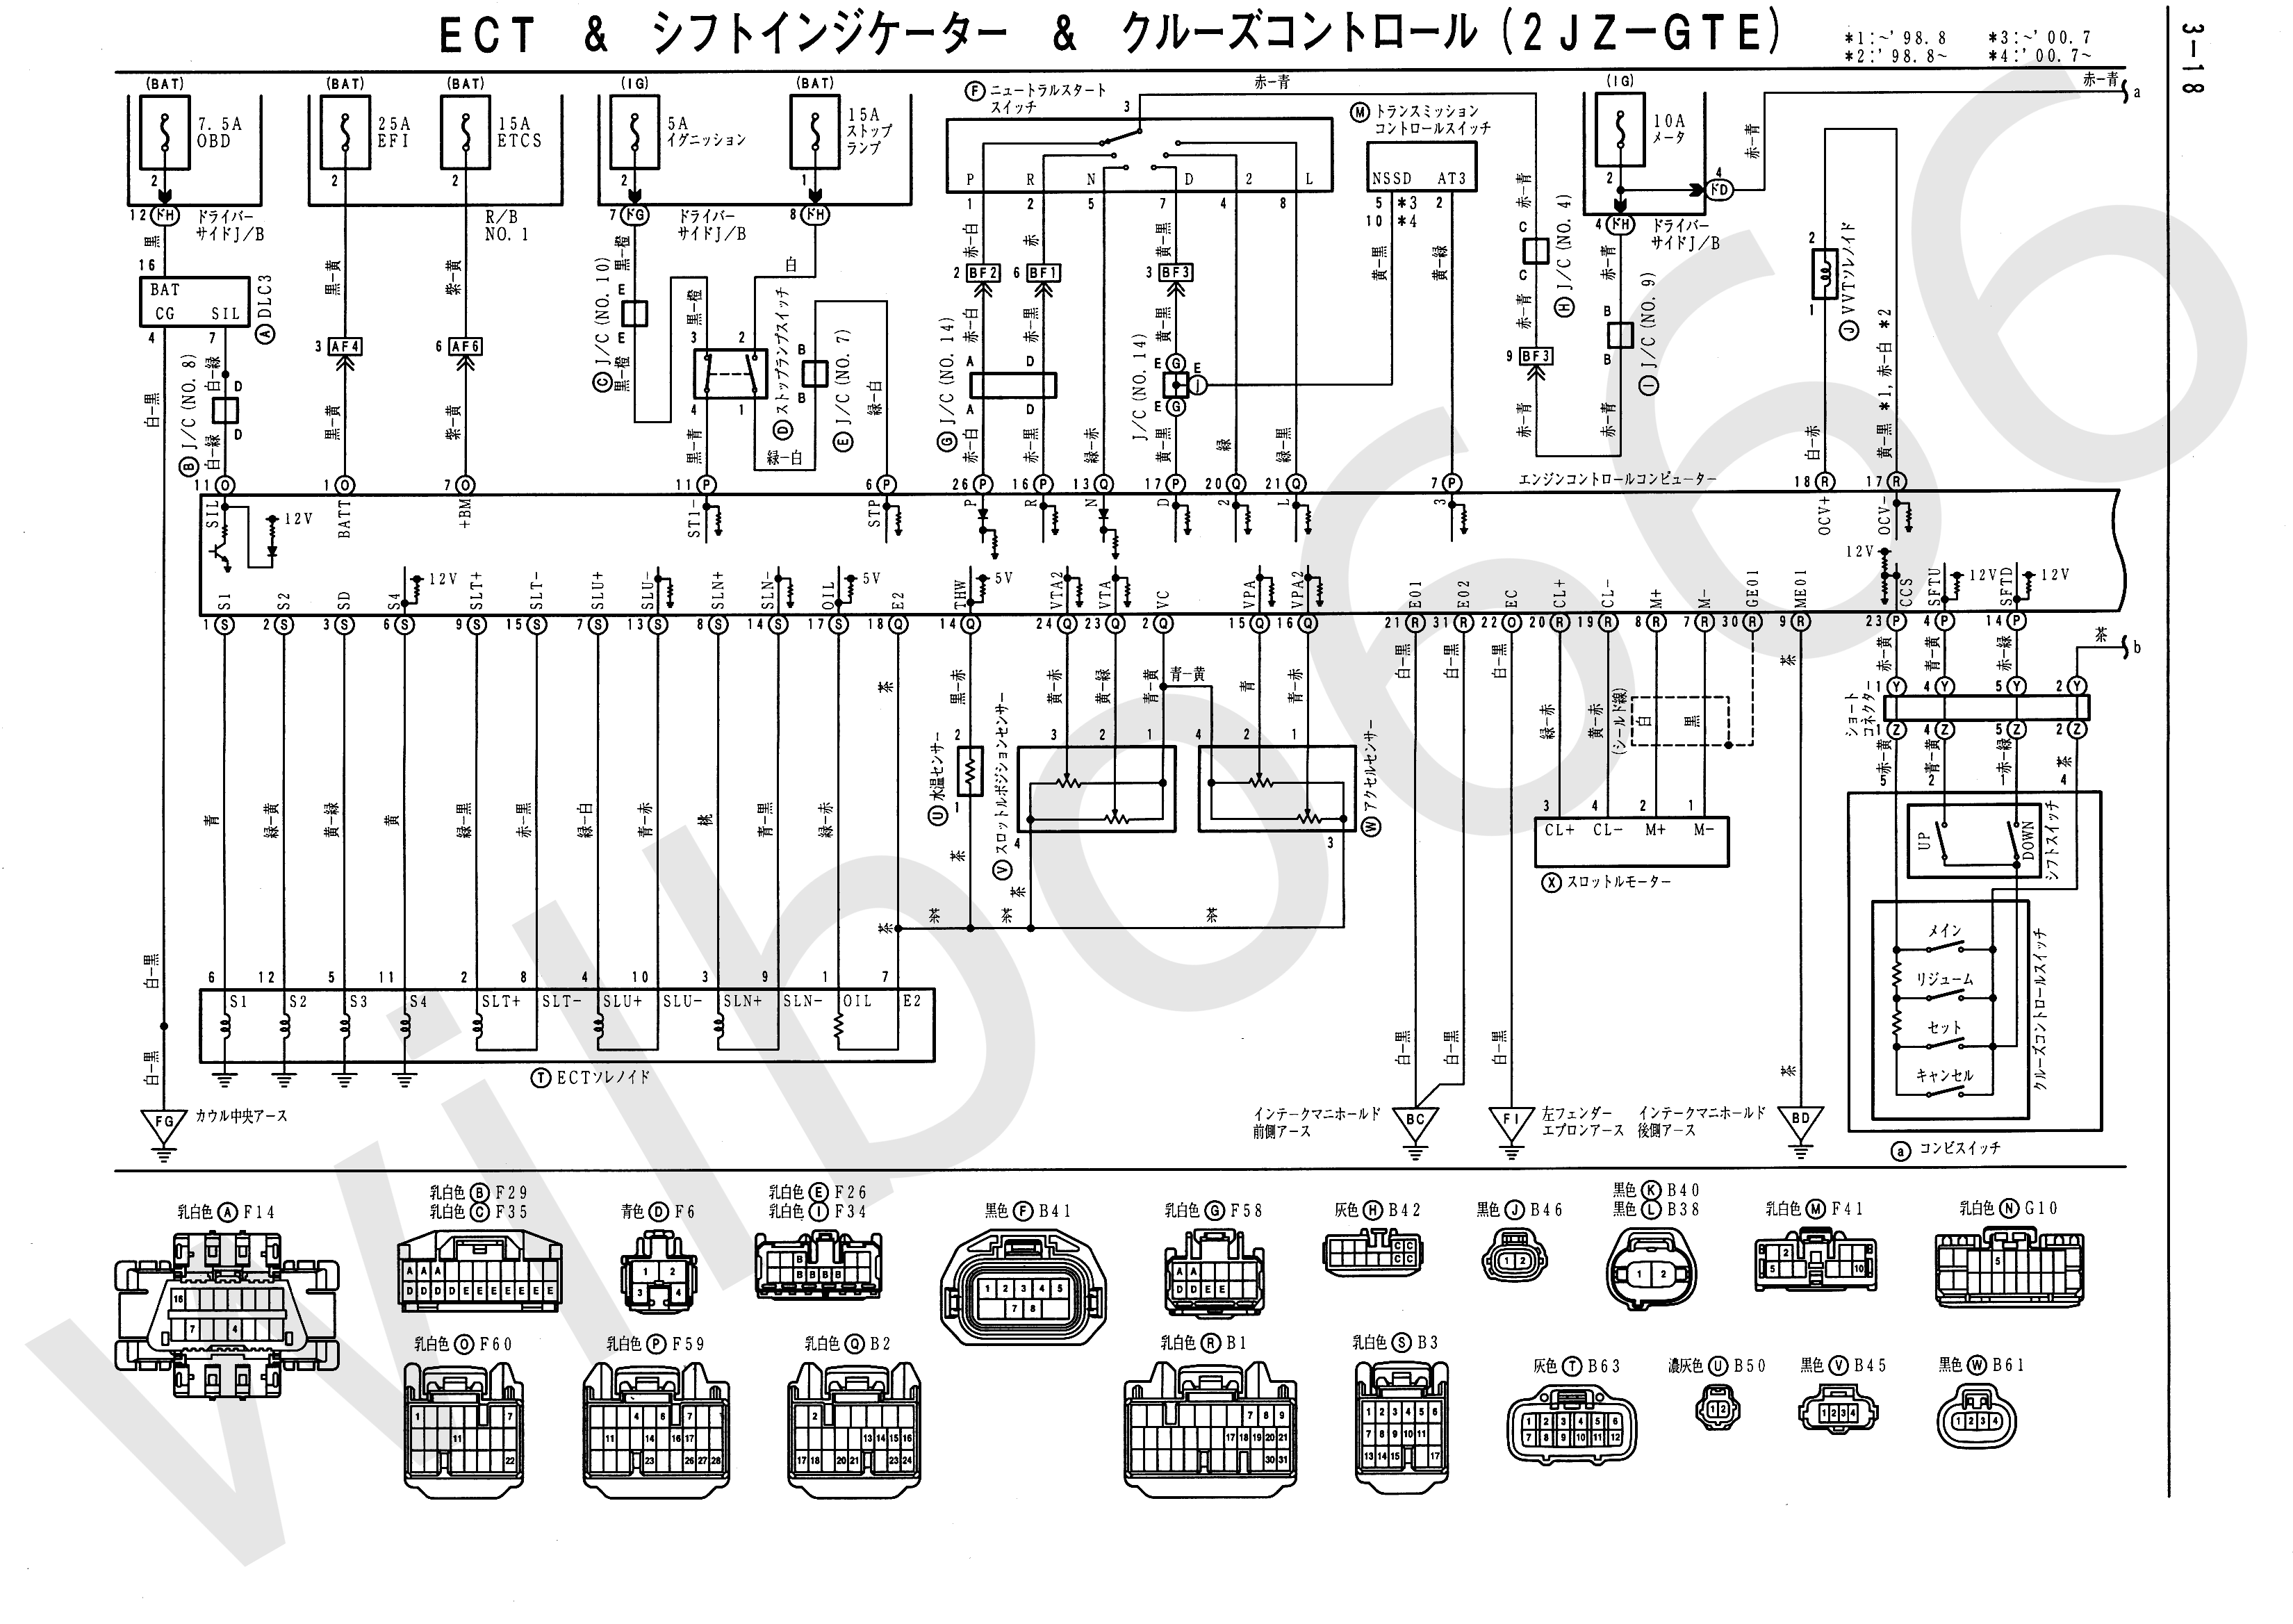 Wilbo666 2jz Gte Vvti Jzs161 Aristo Engine Wiring Big 3 Wiring Diagrams 2jz  Gte Wiring Diagram